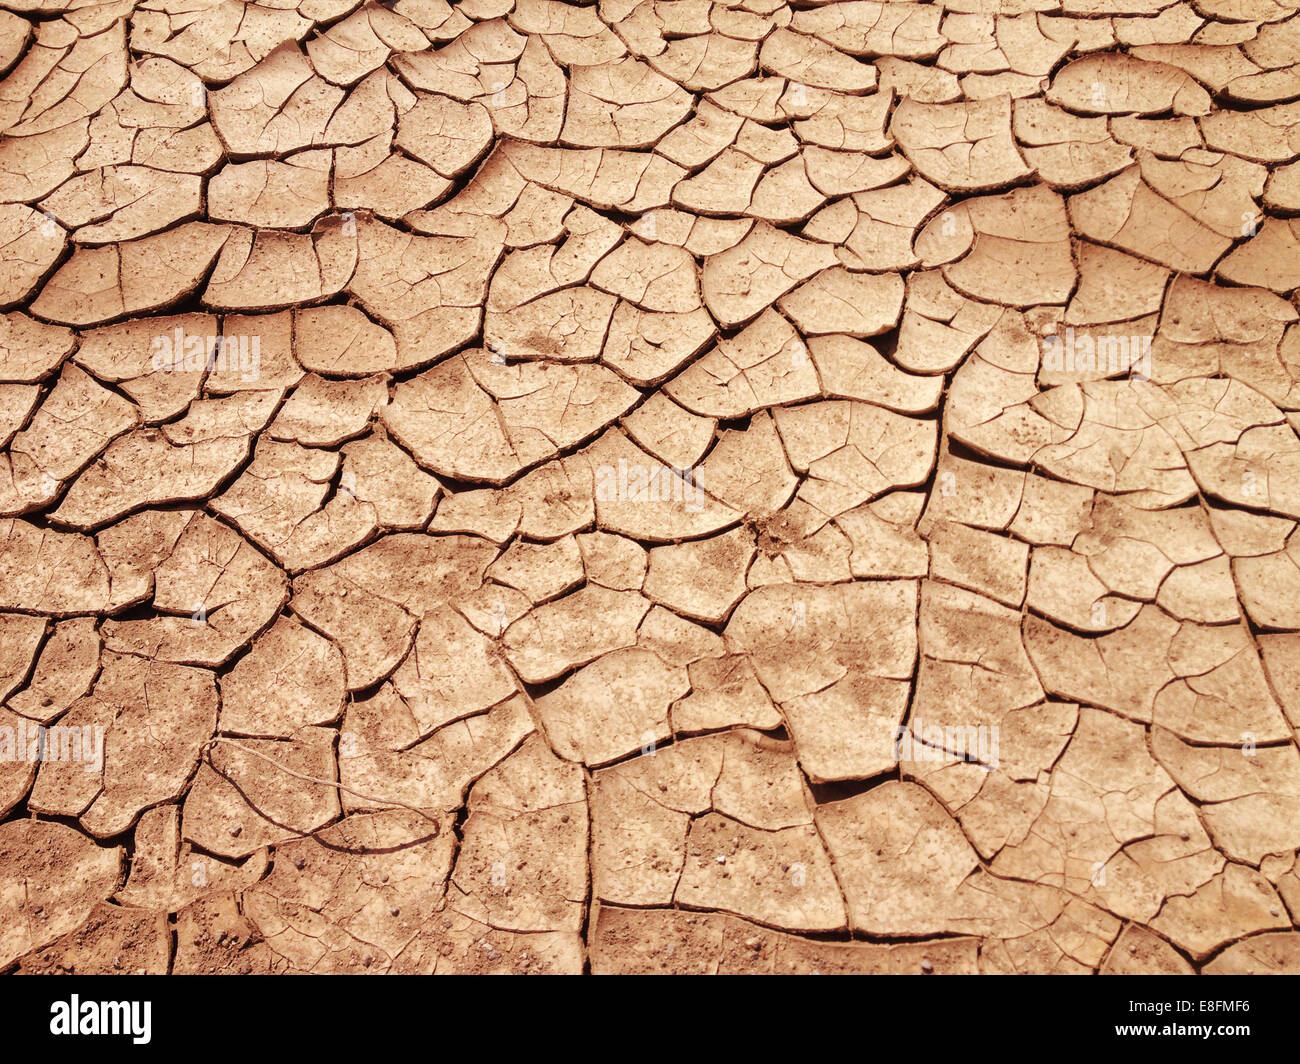 USA, Nevada, Cracked earth, Dried out land in drought - Stock Image